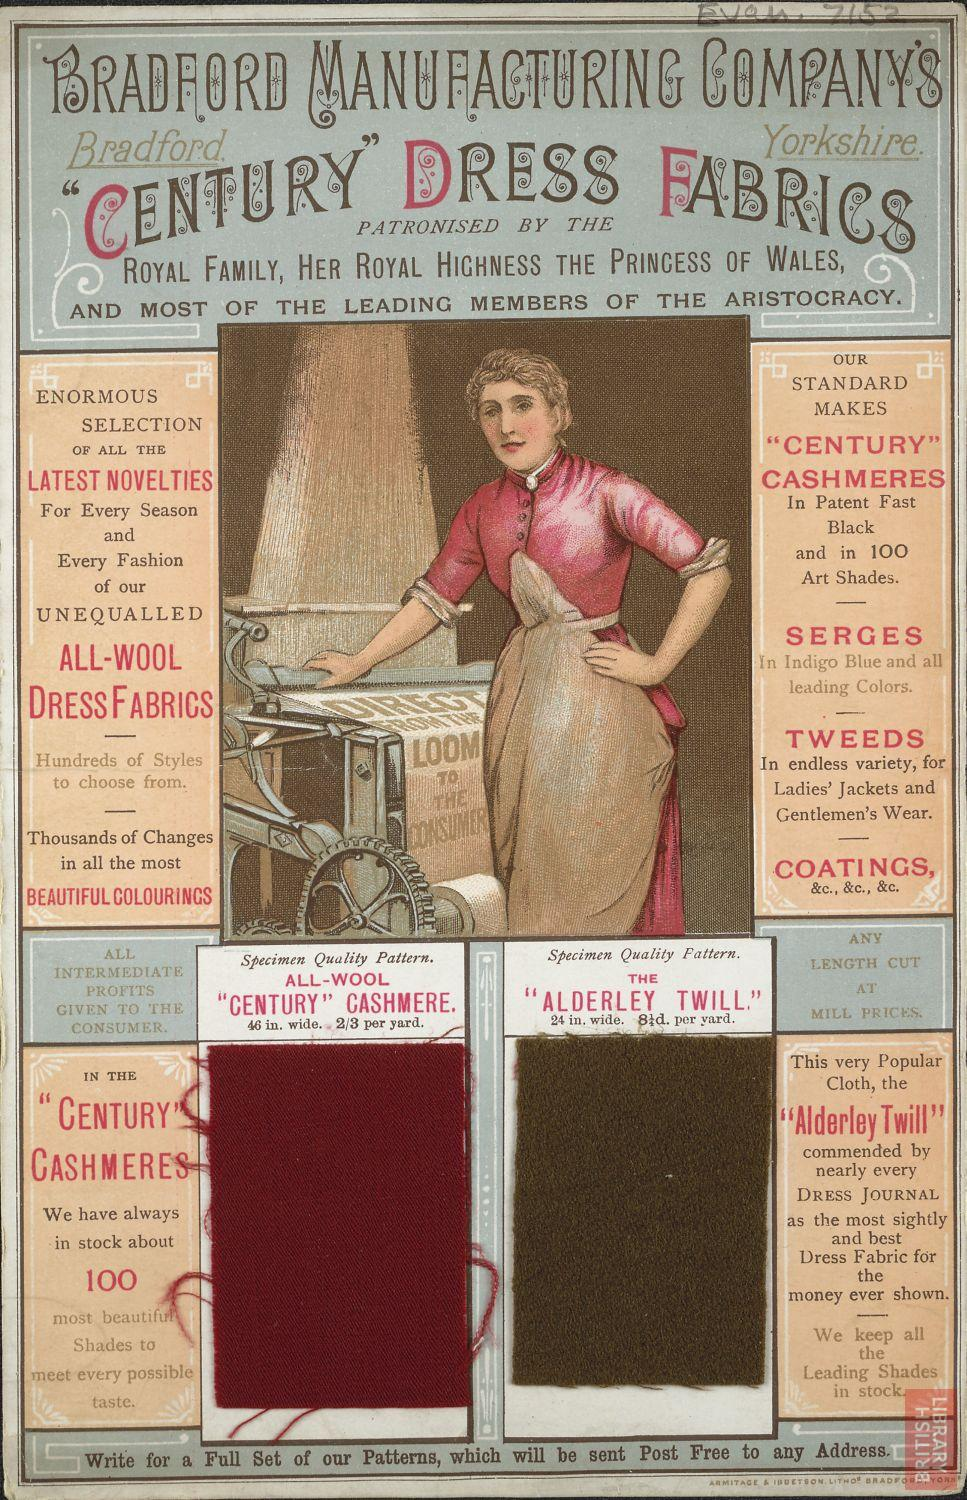 Advertisement for dress fabrics made by Bradford Manufacturing Company